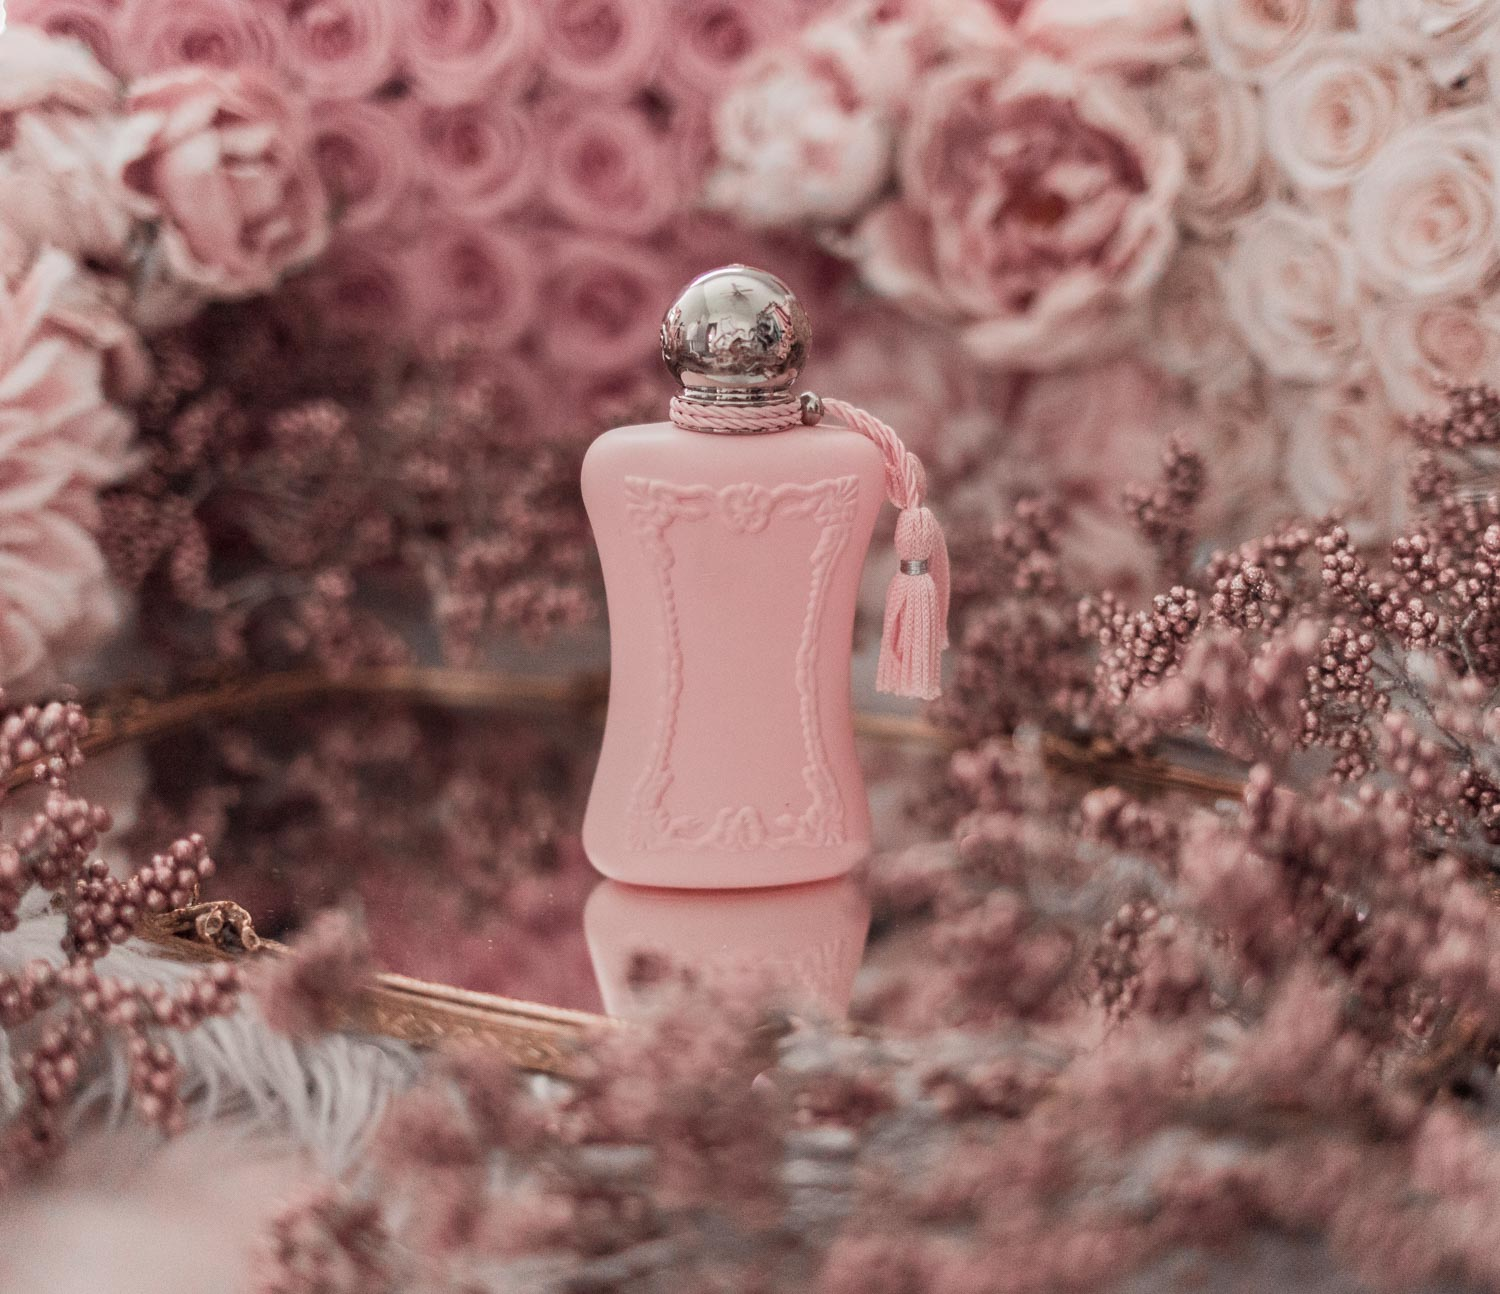 Feminine fashion blogger Elizabeth Hugen of Lizzie in Lace shares the best feminine perfumes and her girly fragrance collection including Parfums de Marly Delina